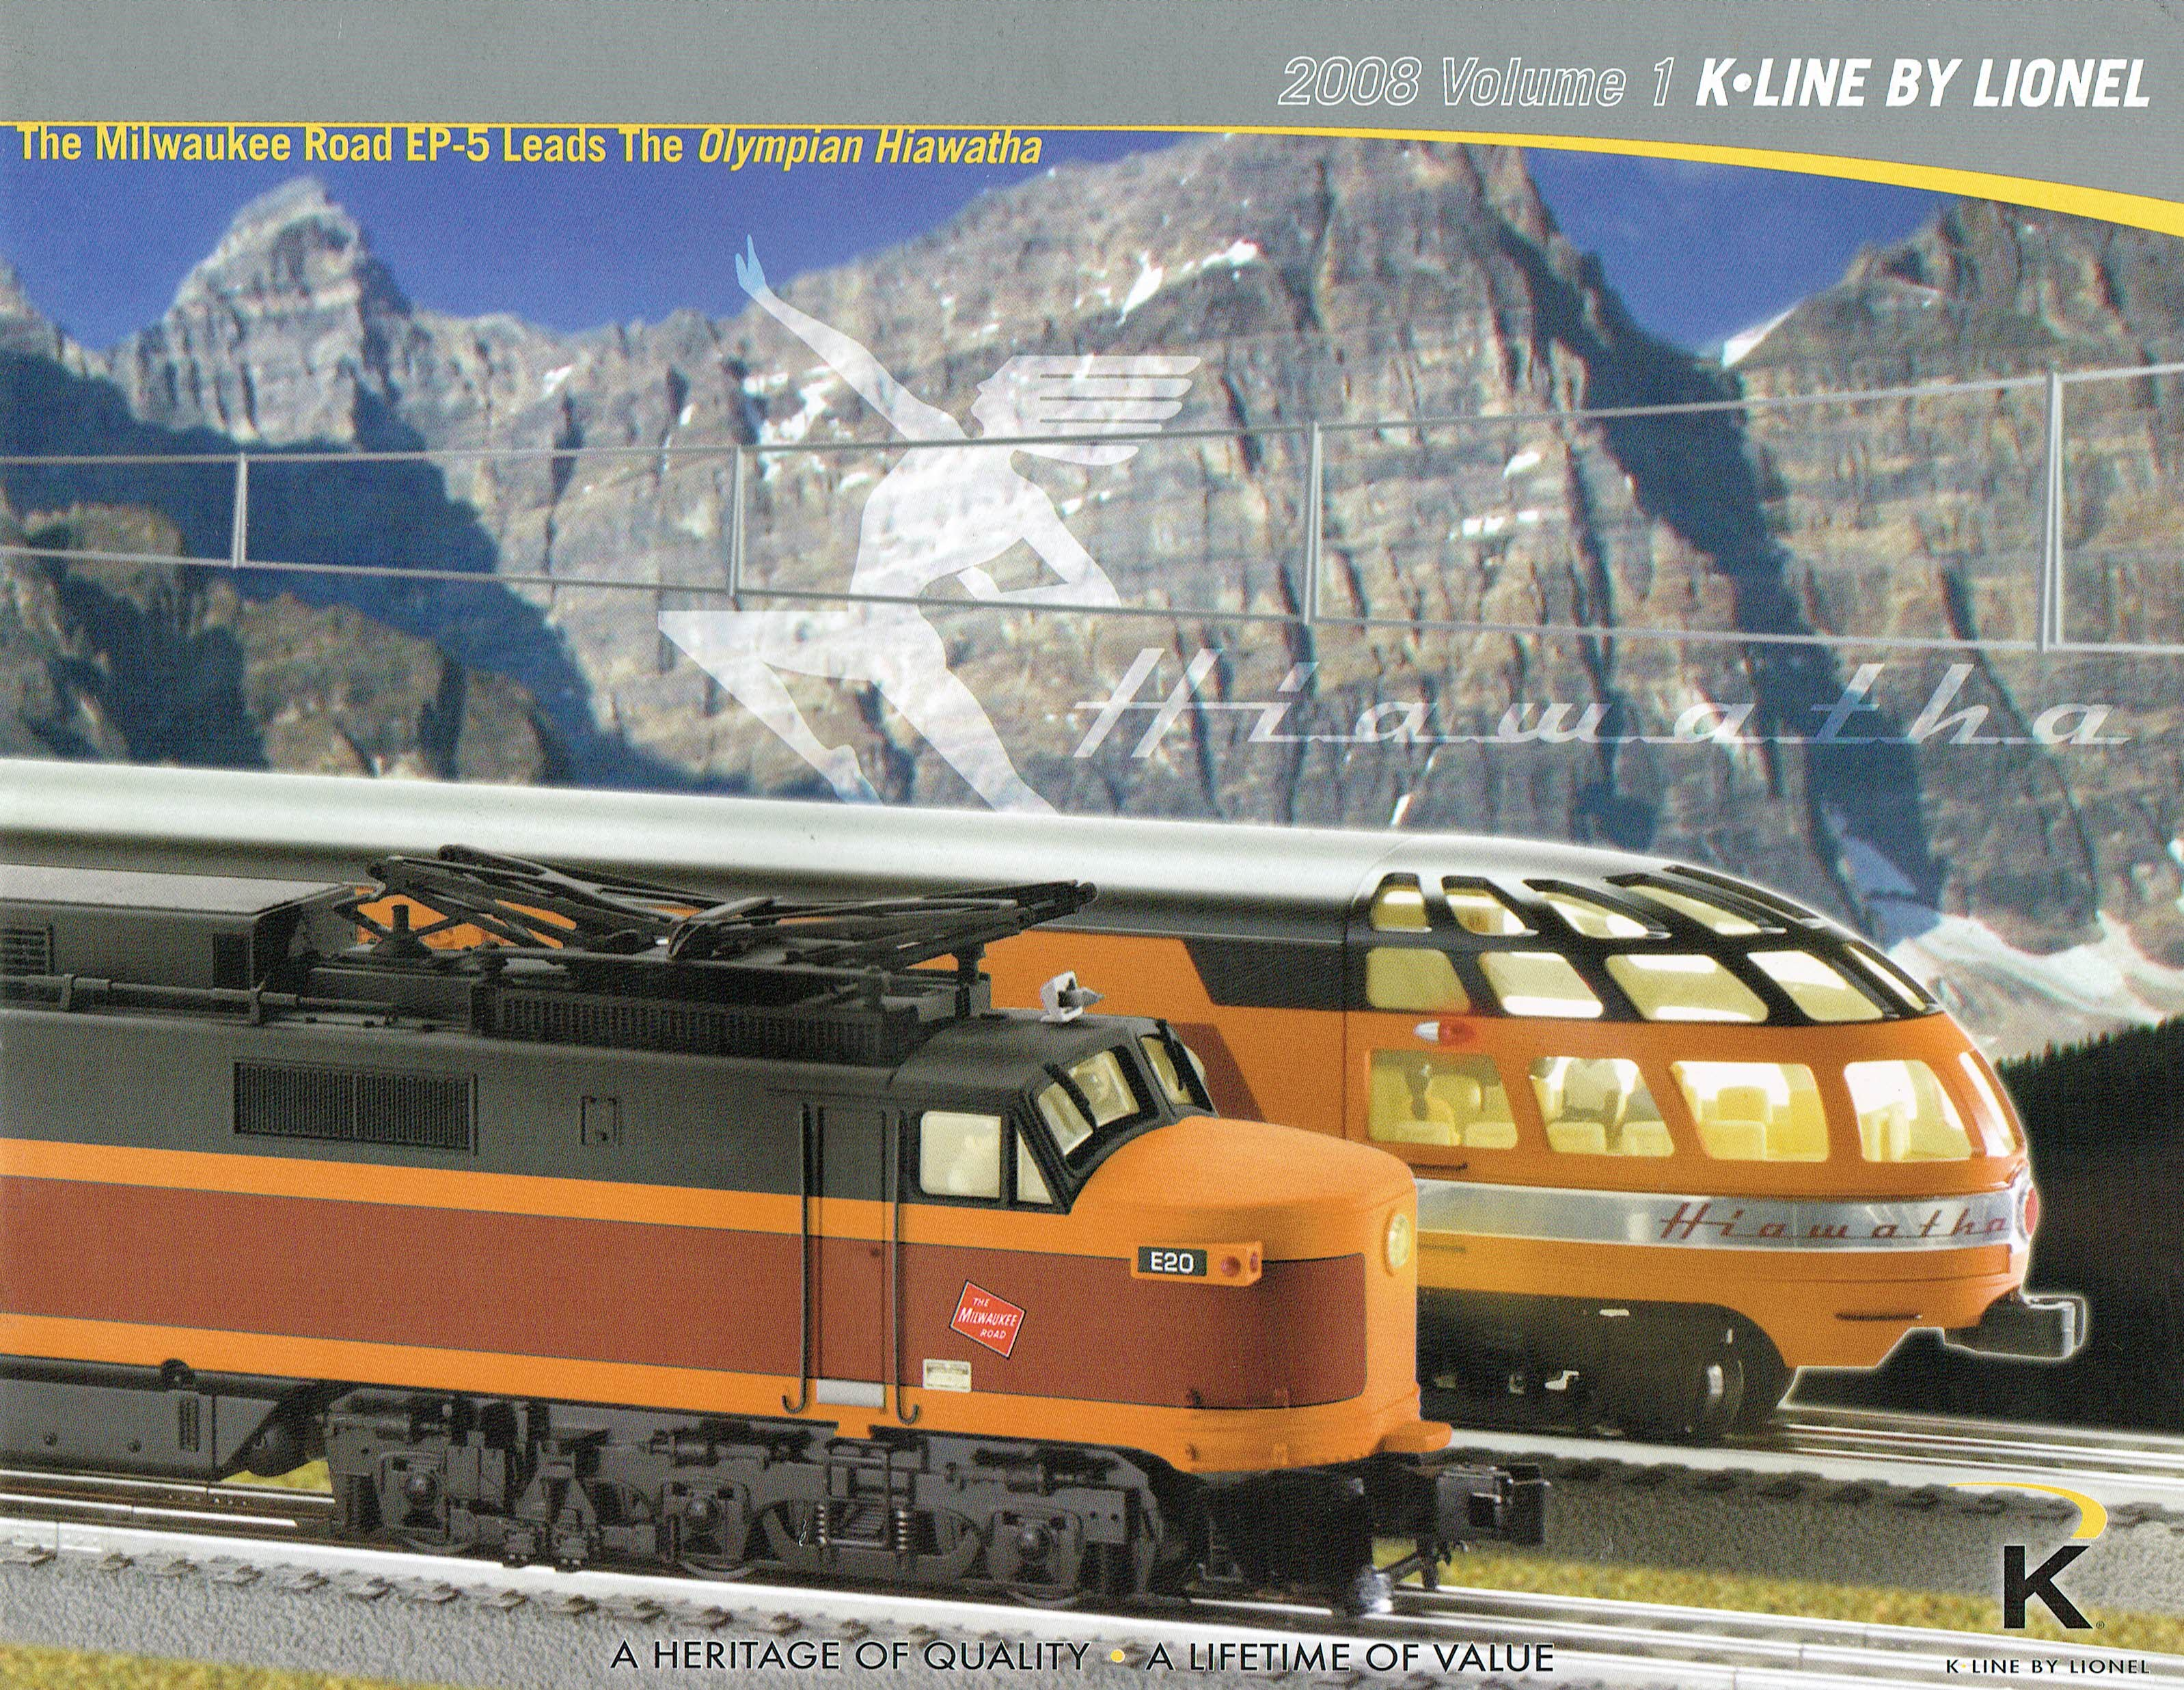 K-Line by Lionel 2008 Volume 1 Catalog image